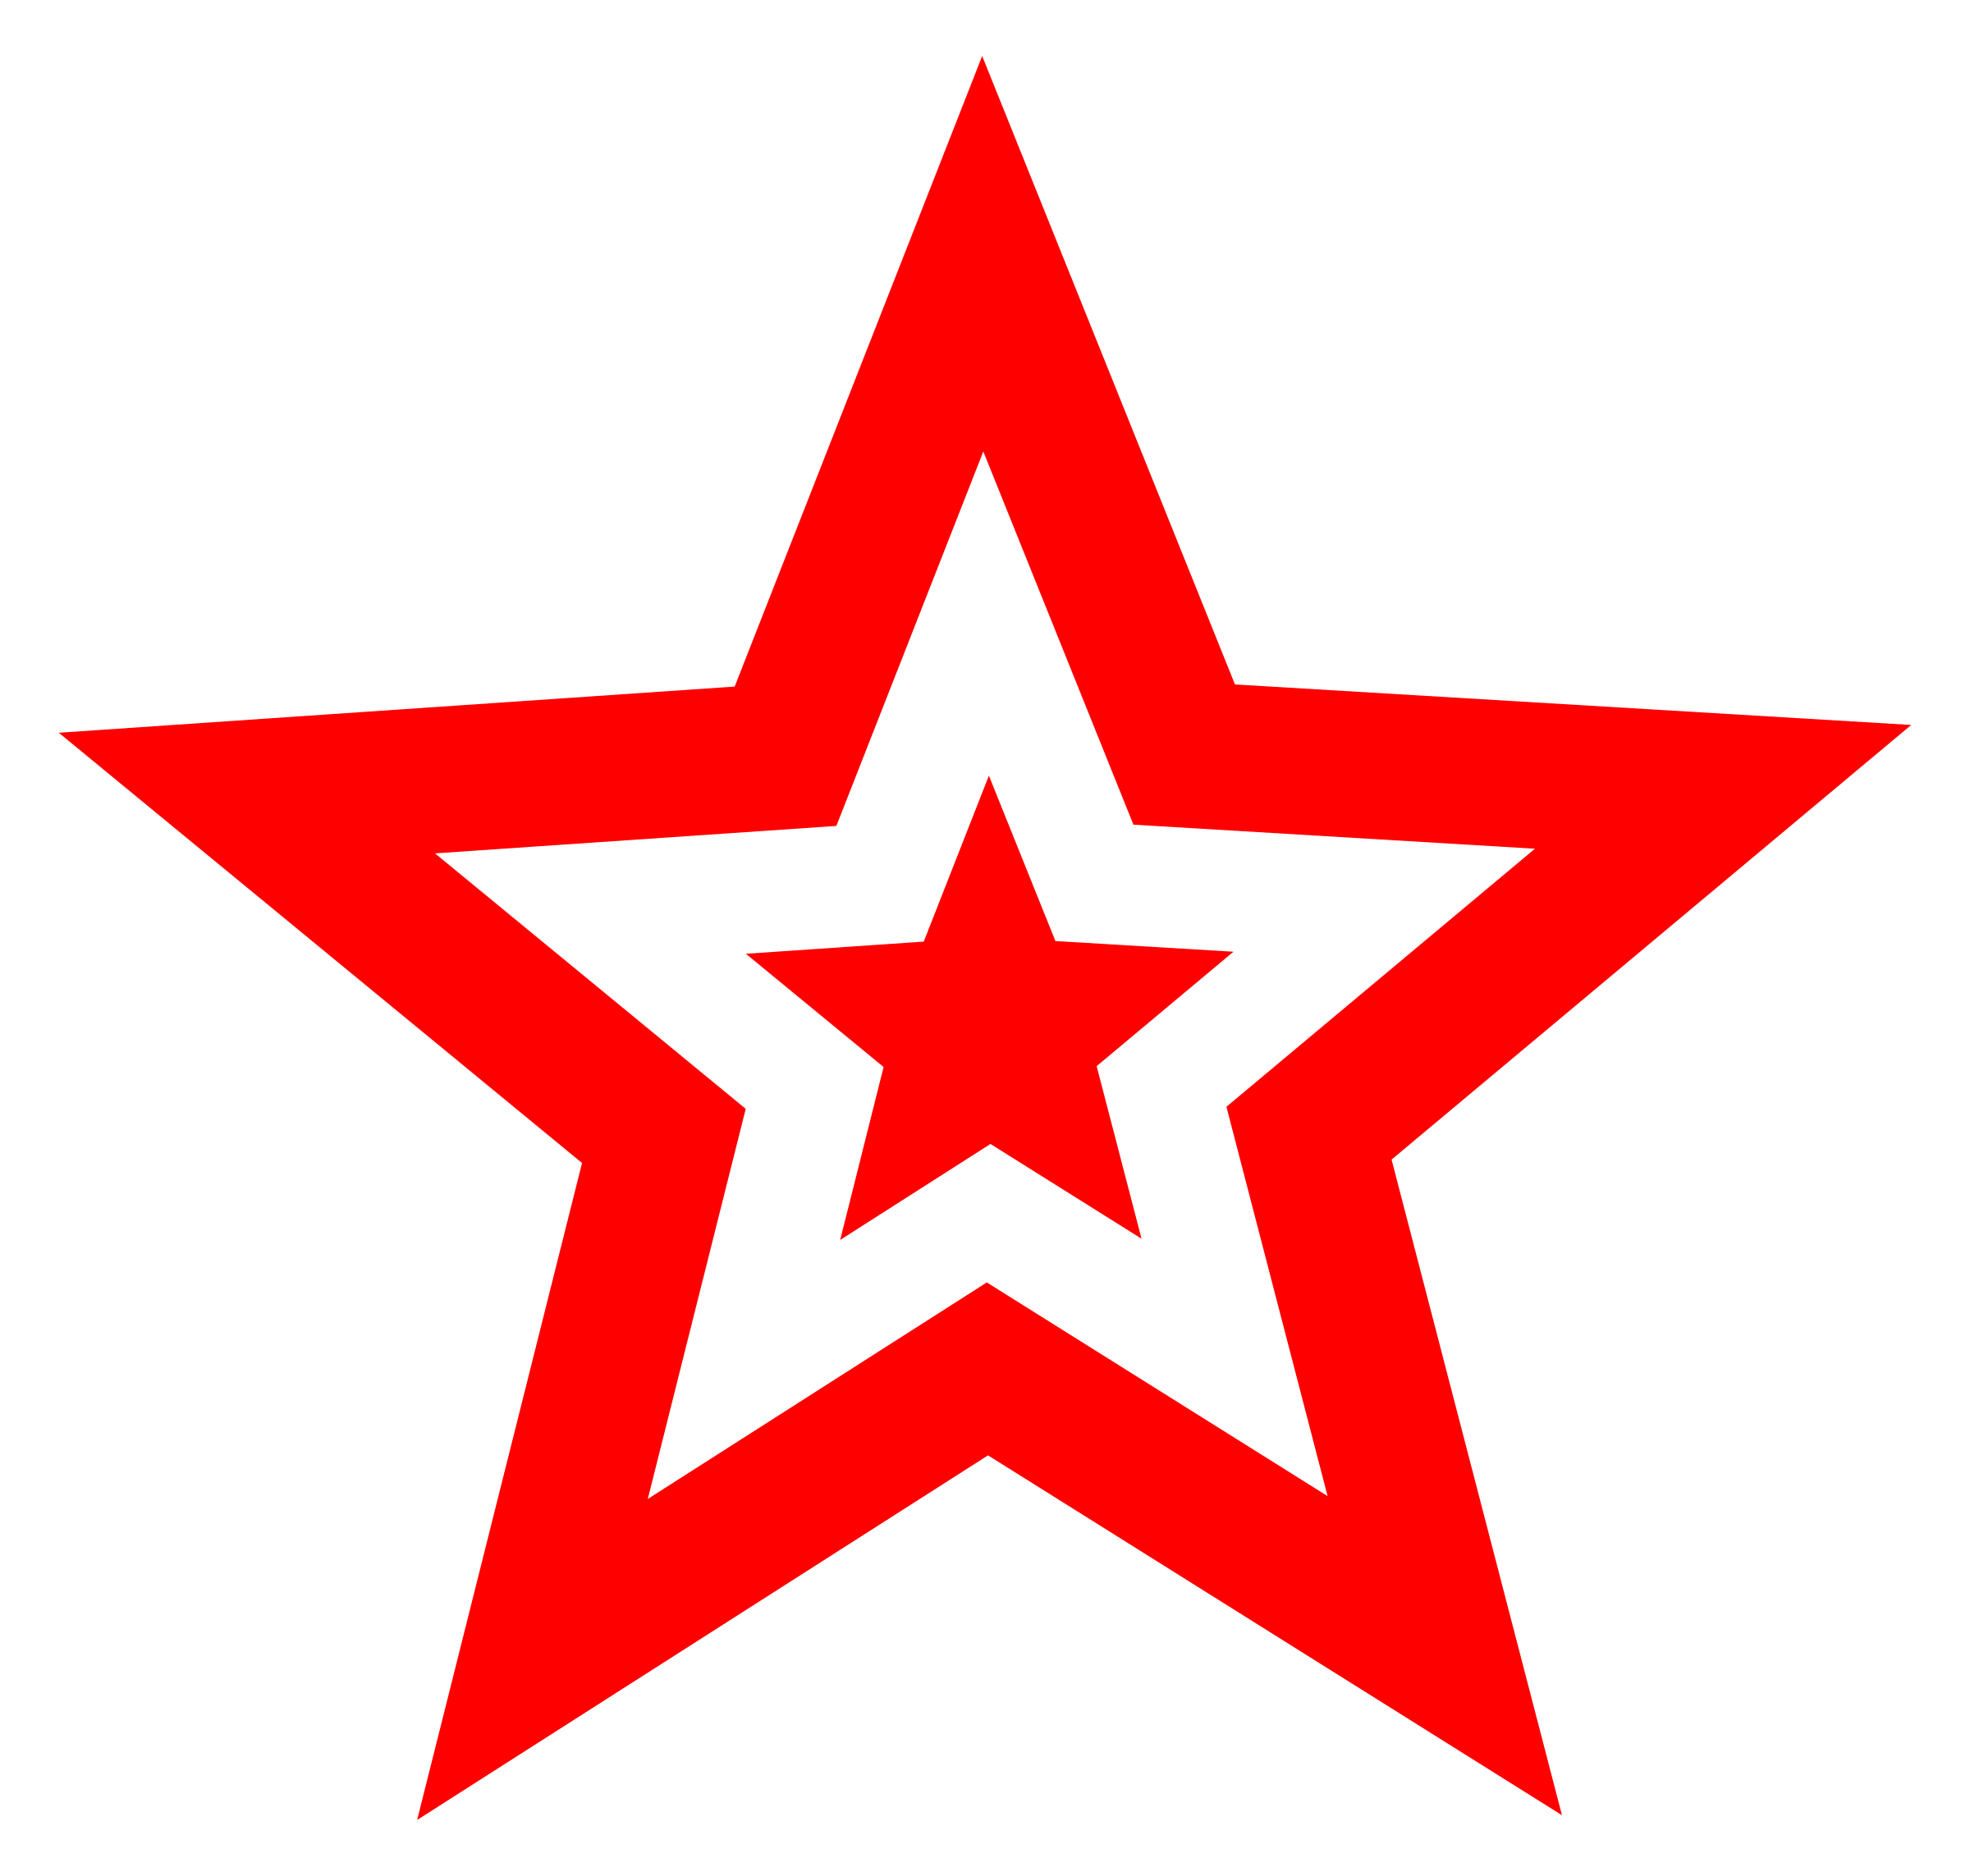 White and Red Star Logo.